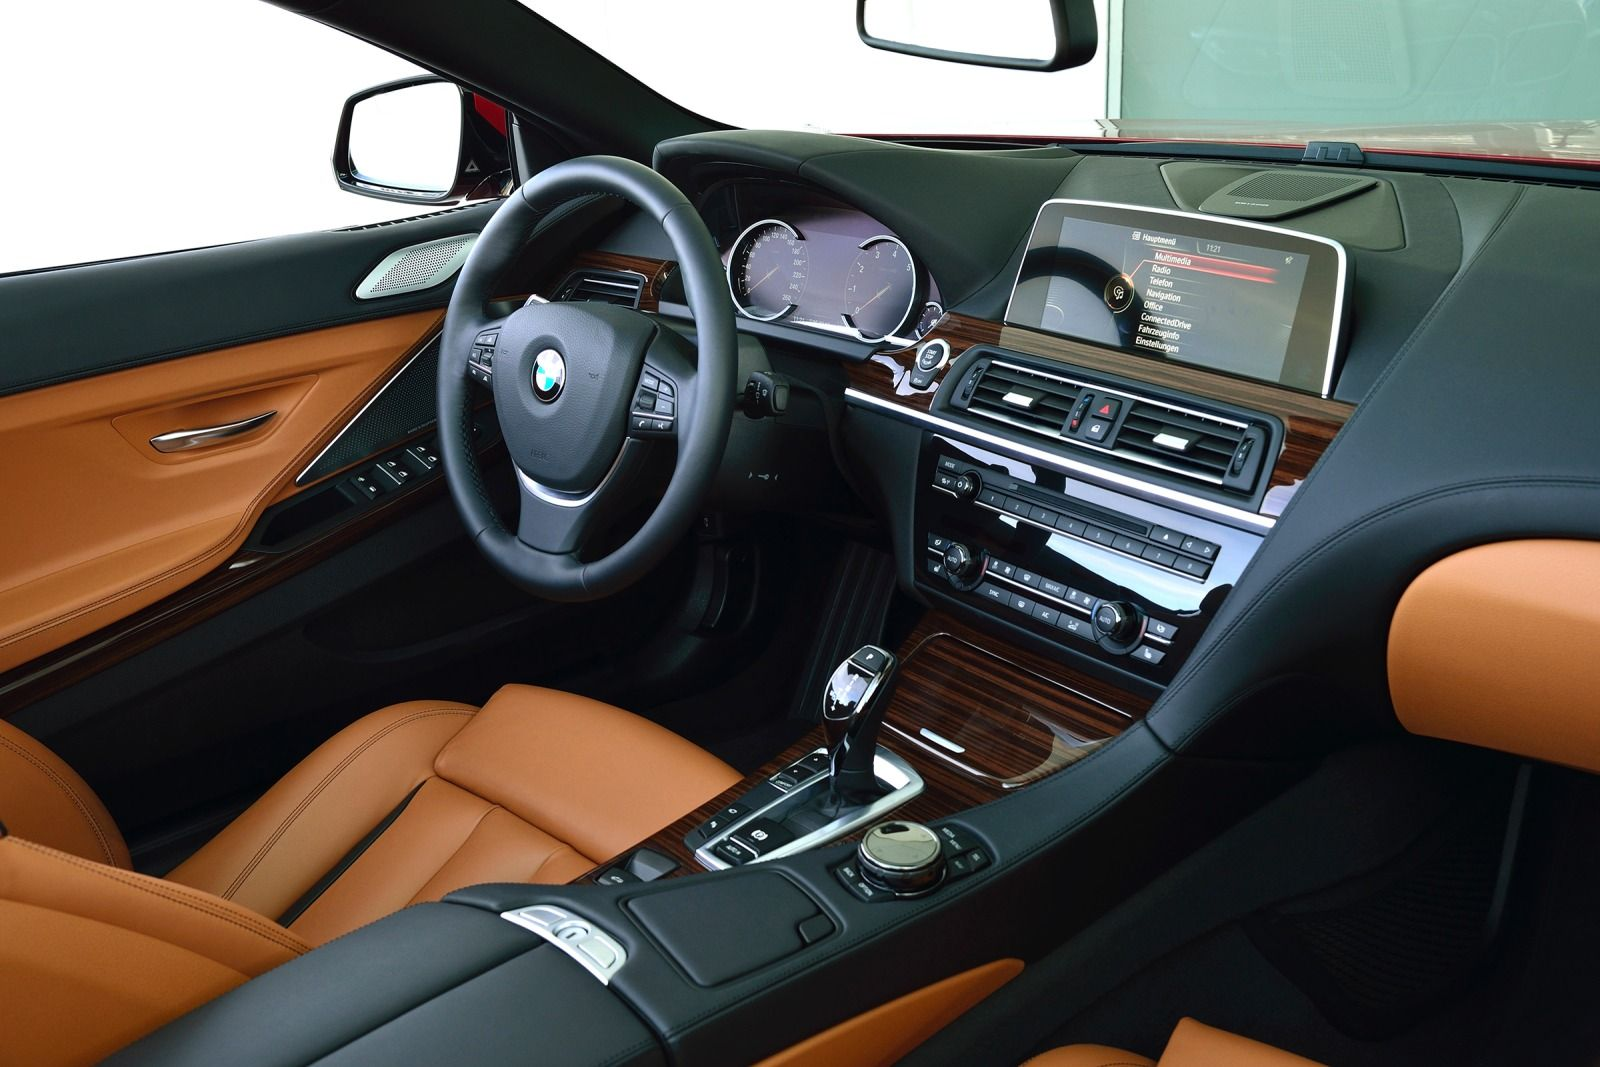 1015 BMW Series 6 - Interior